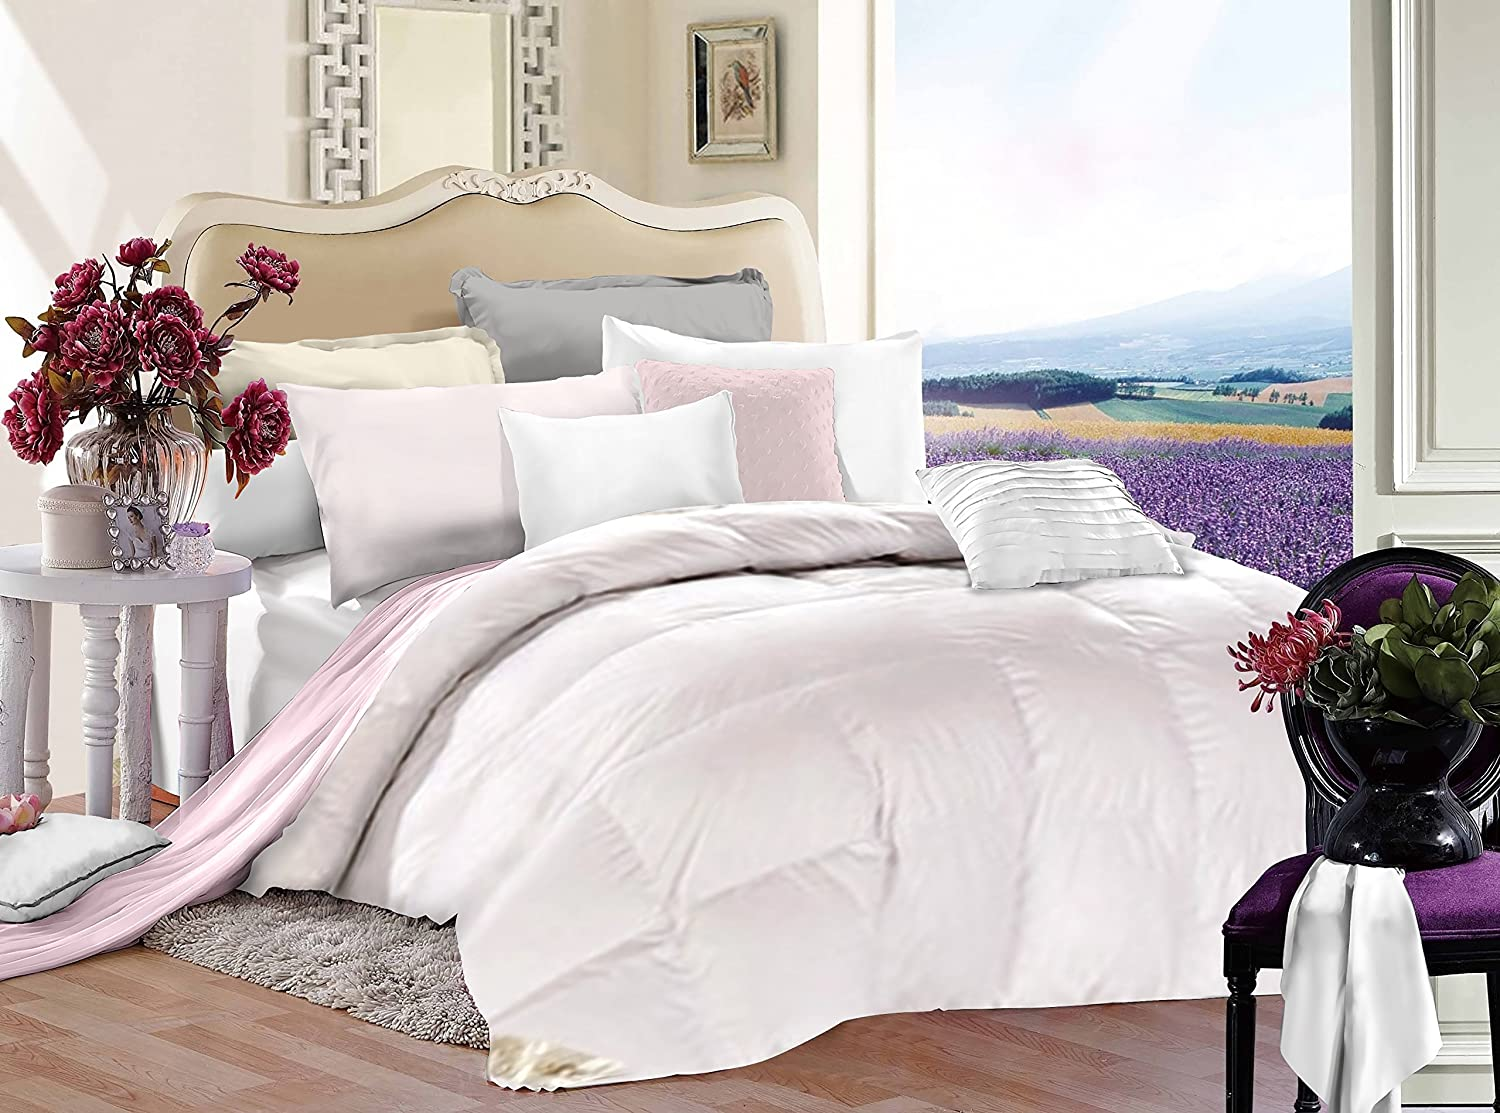 what full whats bedding duvet and how s of cover which vs to bed use sets in a quilt set duvets size is filling difference comforters coverlet between comforter down with filled best